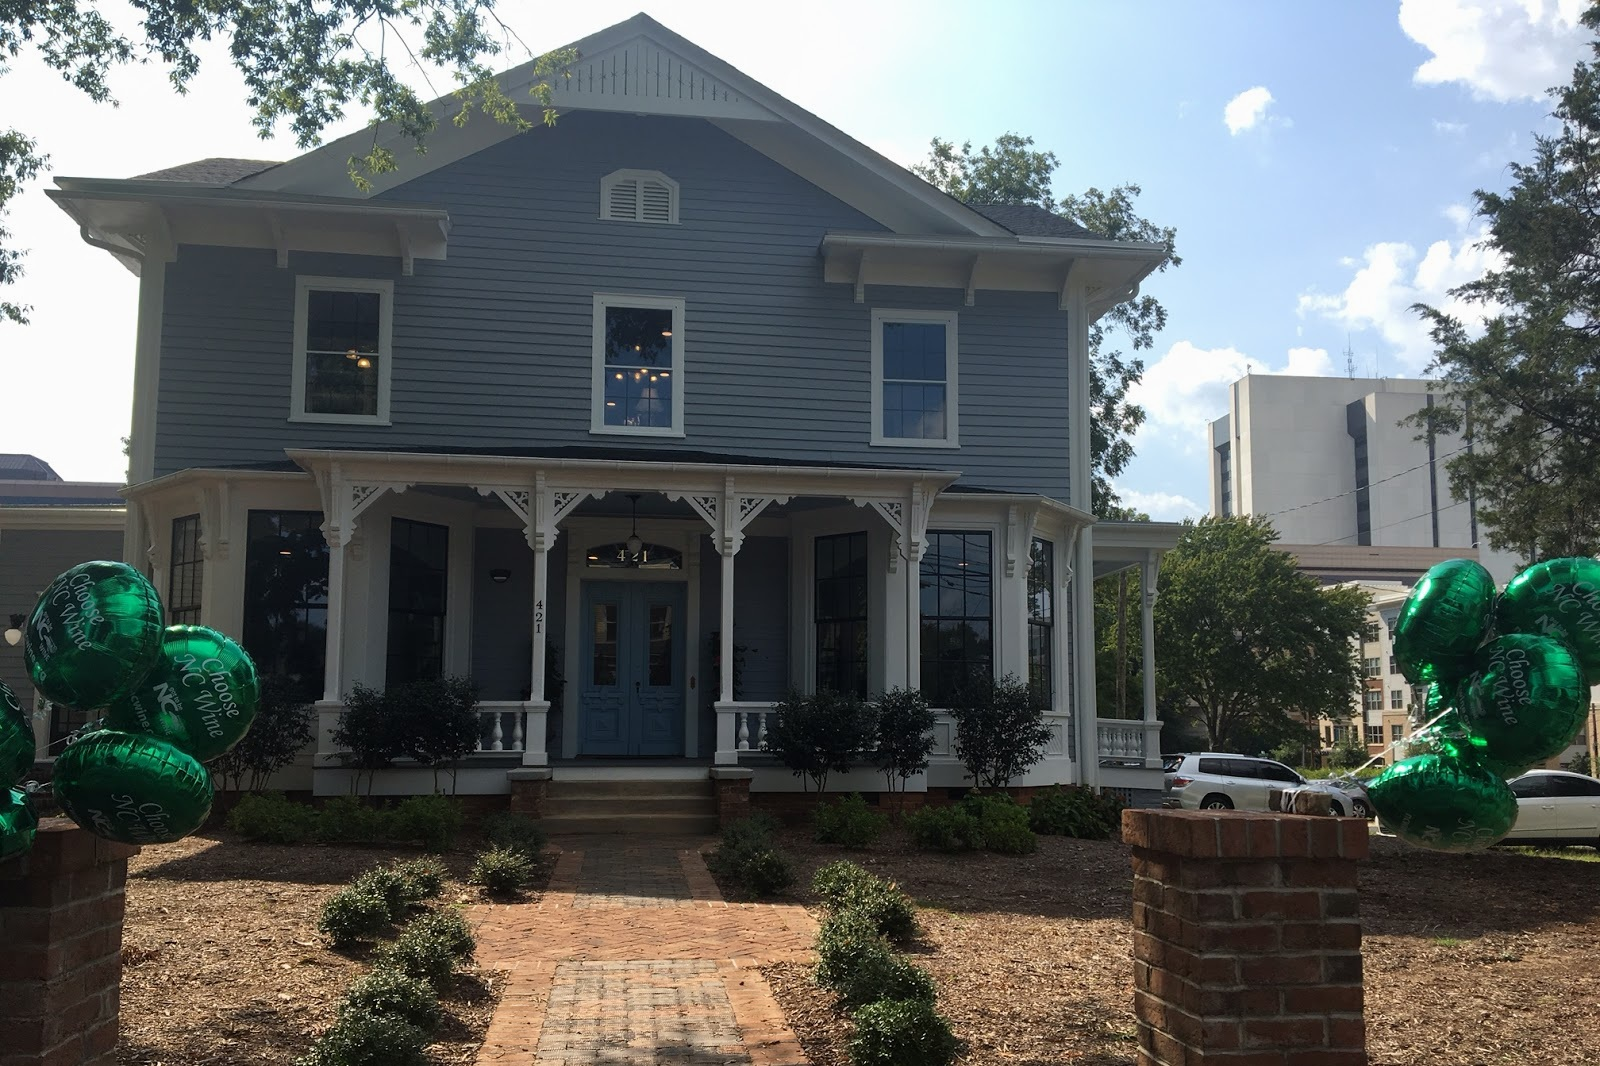 The Norris House in downtown Raleigh played host to the 2018 NC Wine and Grape Month Kickoff